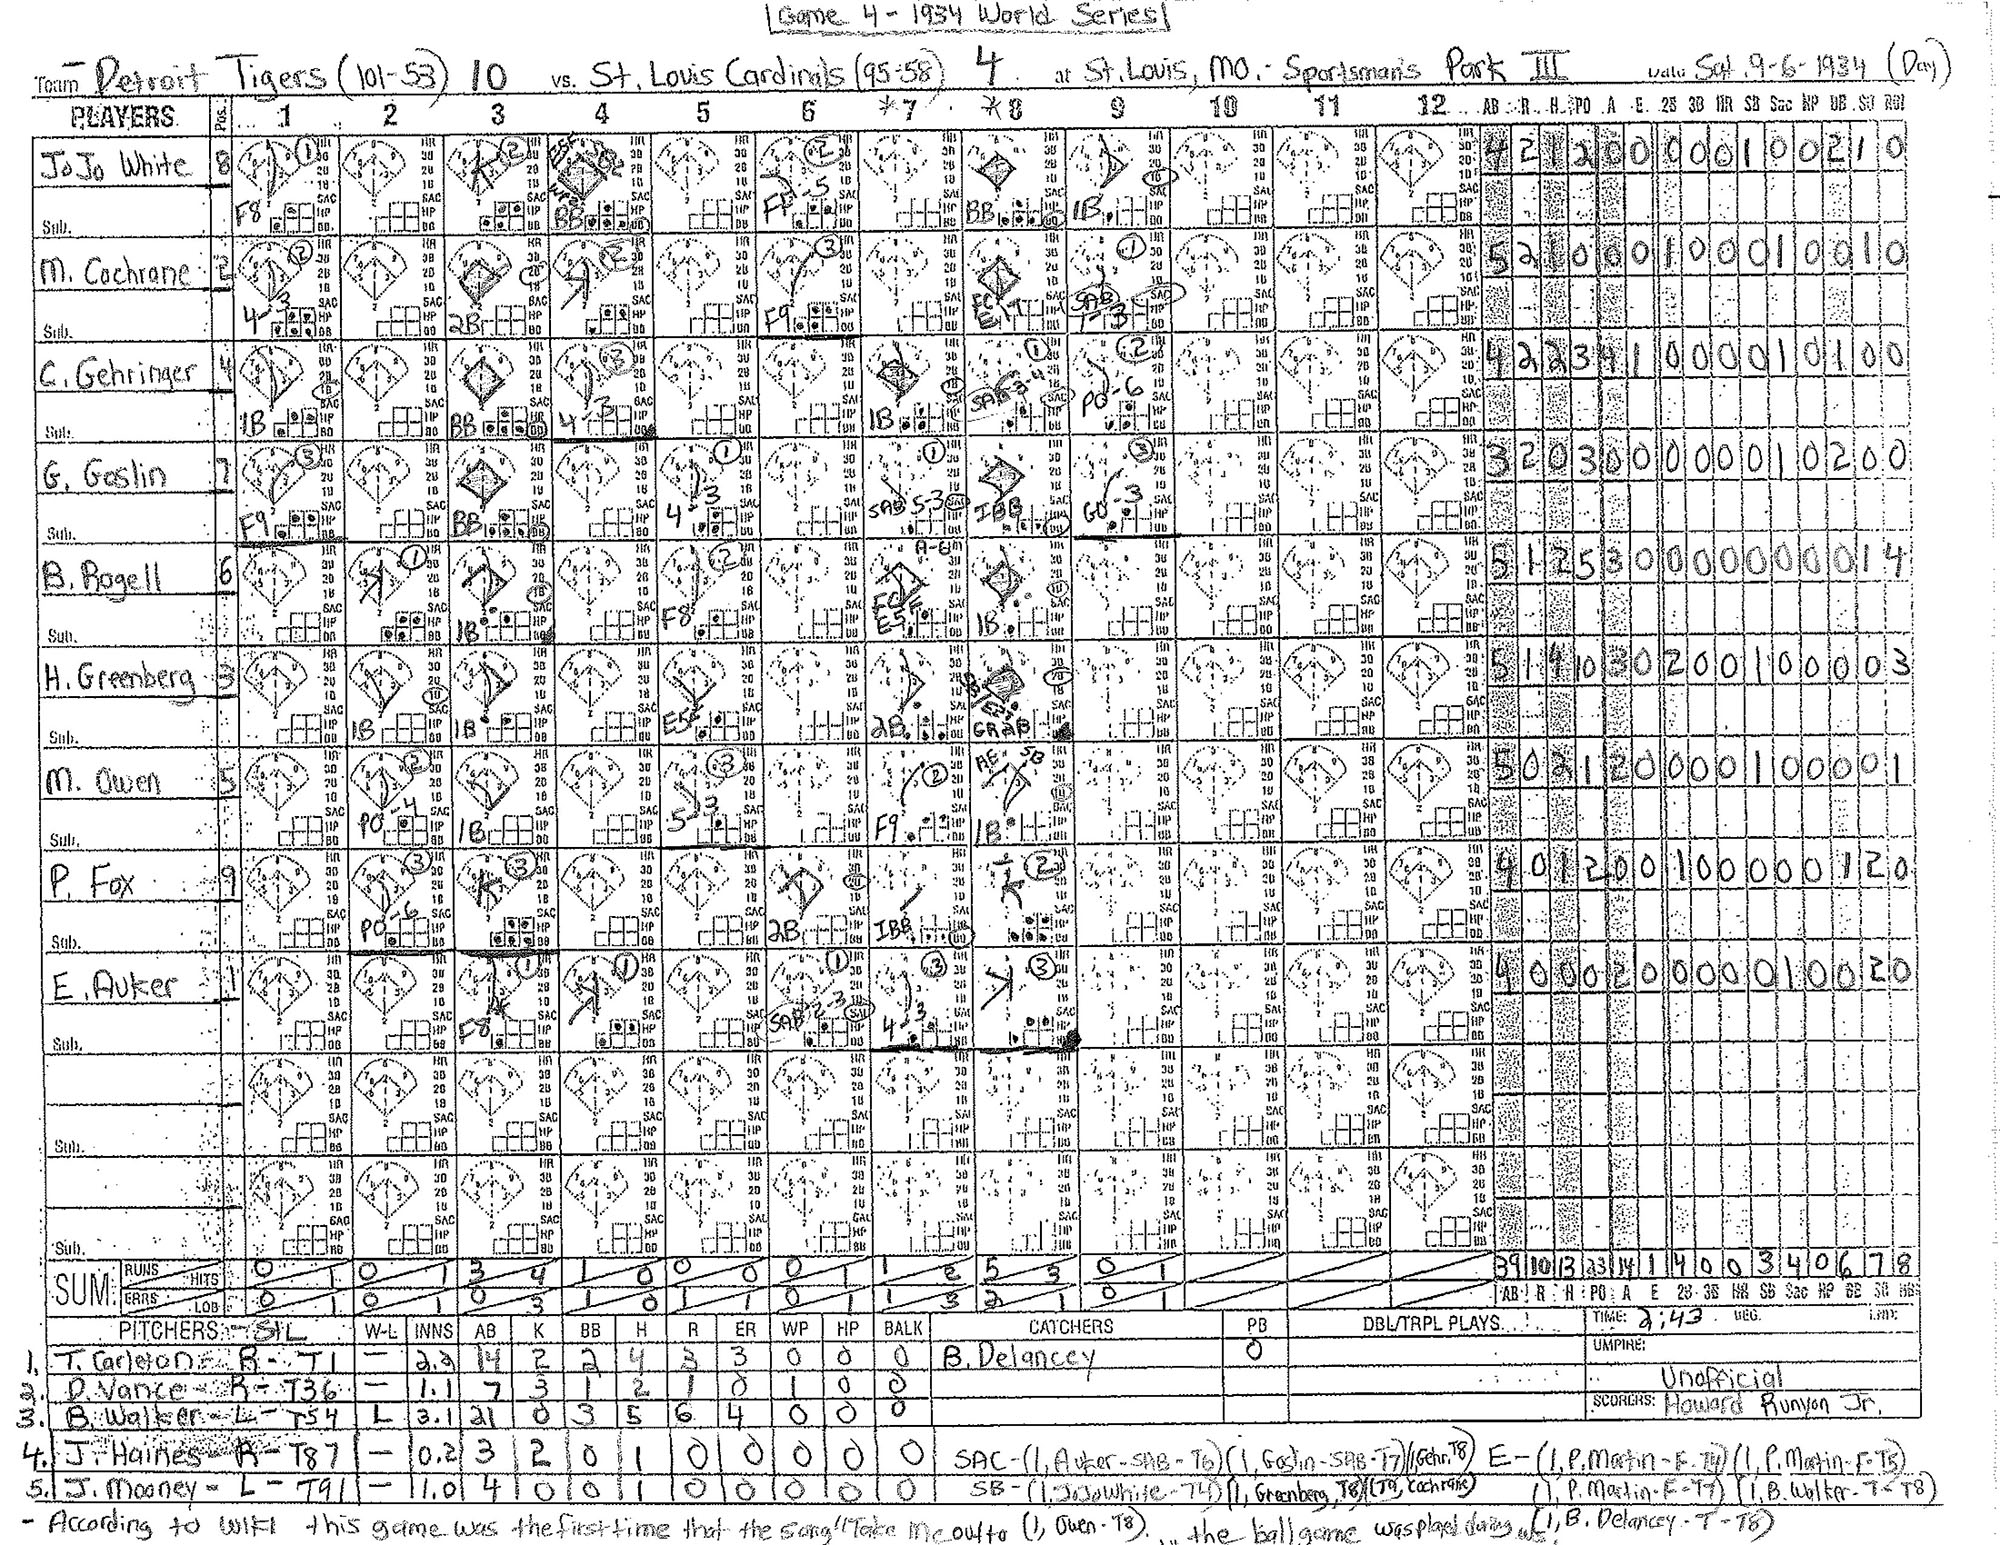 Scoresheet by Howard Runyon of Game 4 of 1934 World Series